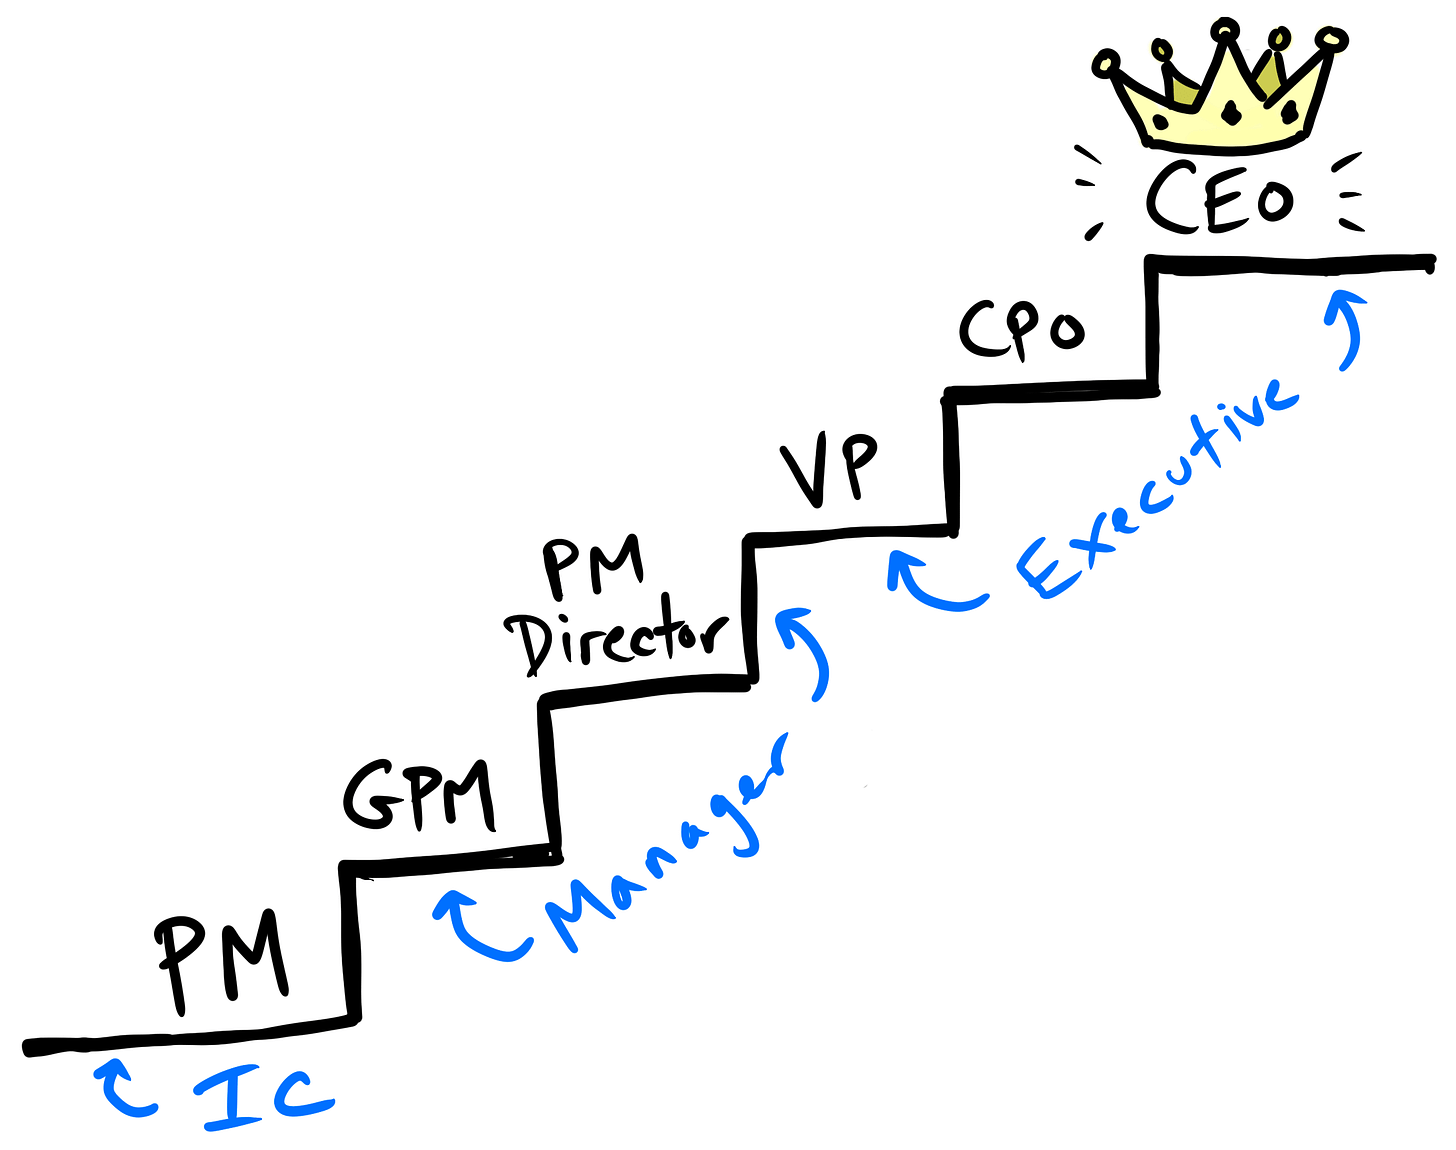 Typical product manager career path: PM → GPM → PM Director → VP/CPO → CEO/Founder